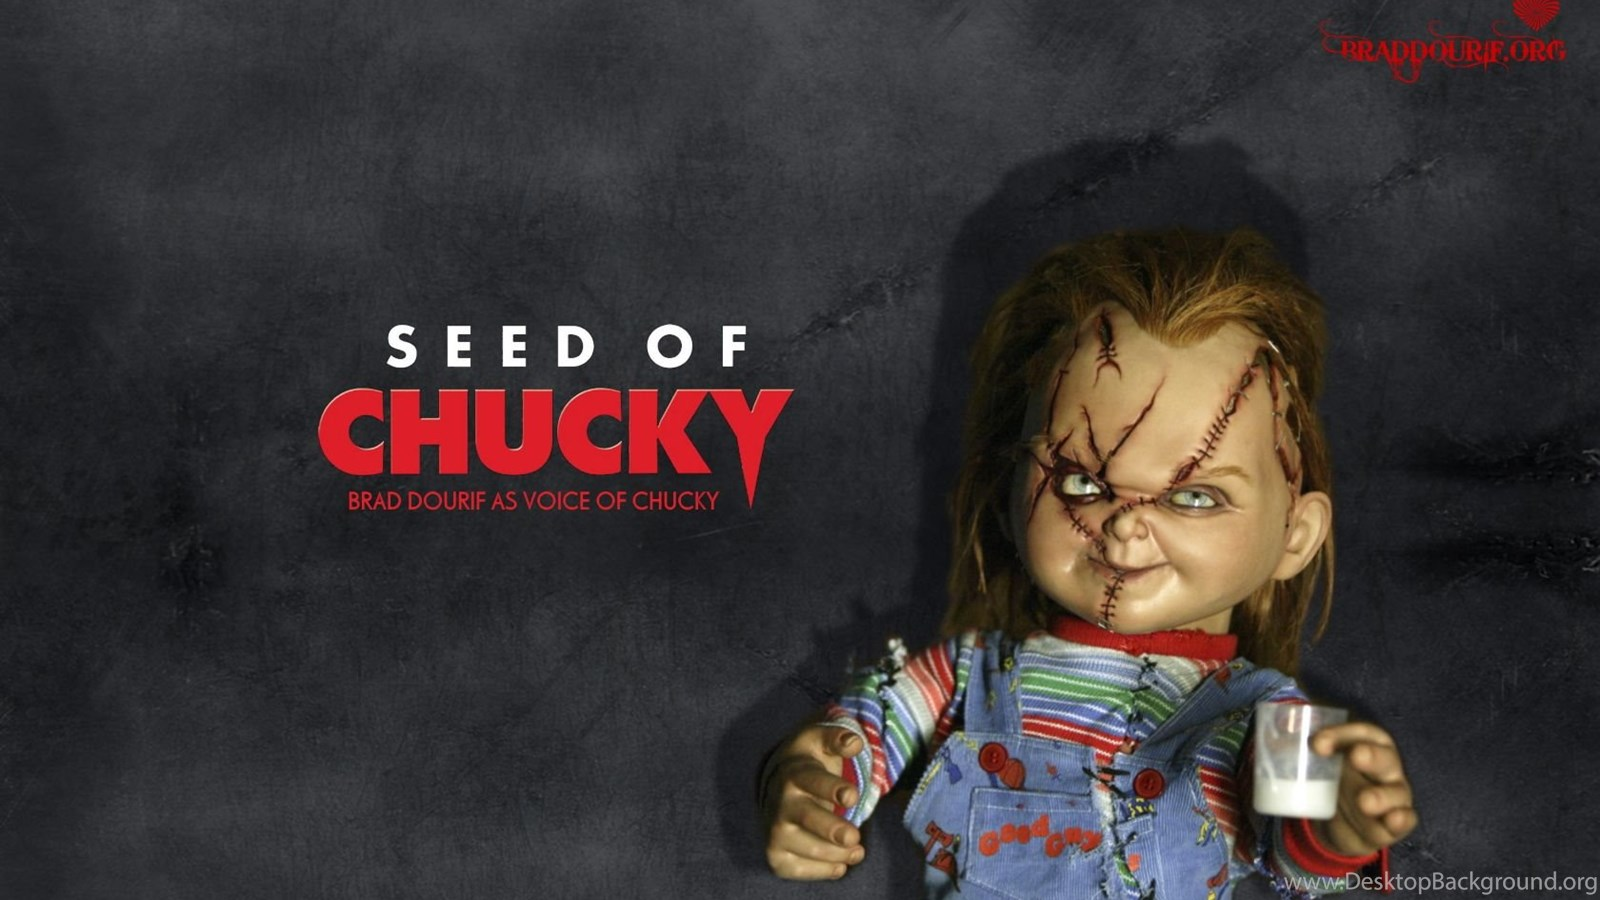 CHILDS PLAY SEED OF CHUCKY WALLPAPER Desktop Background